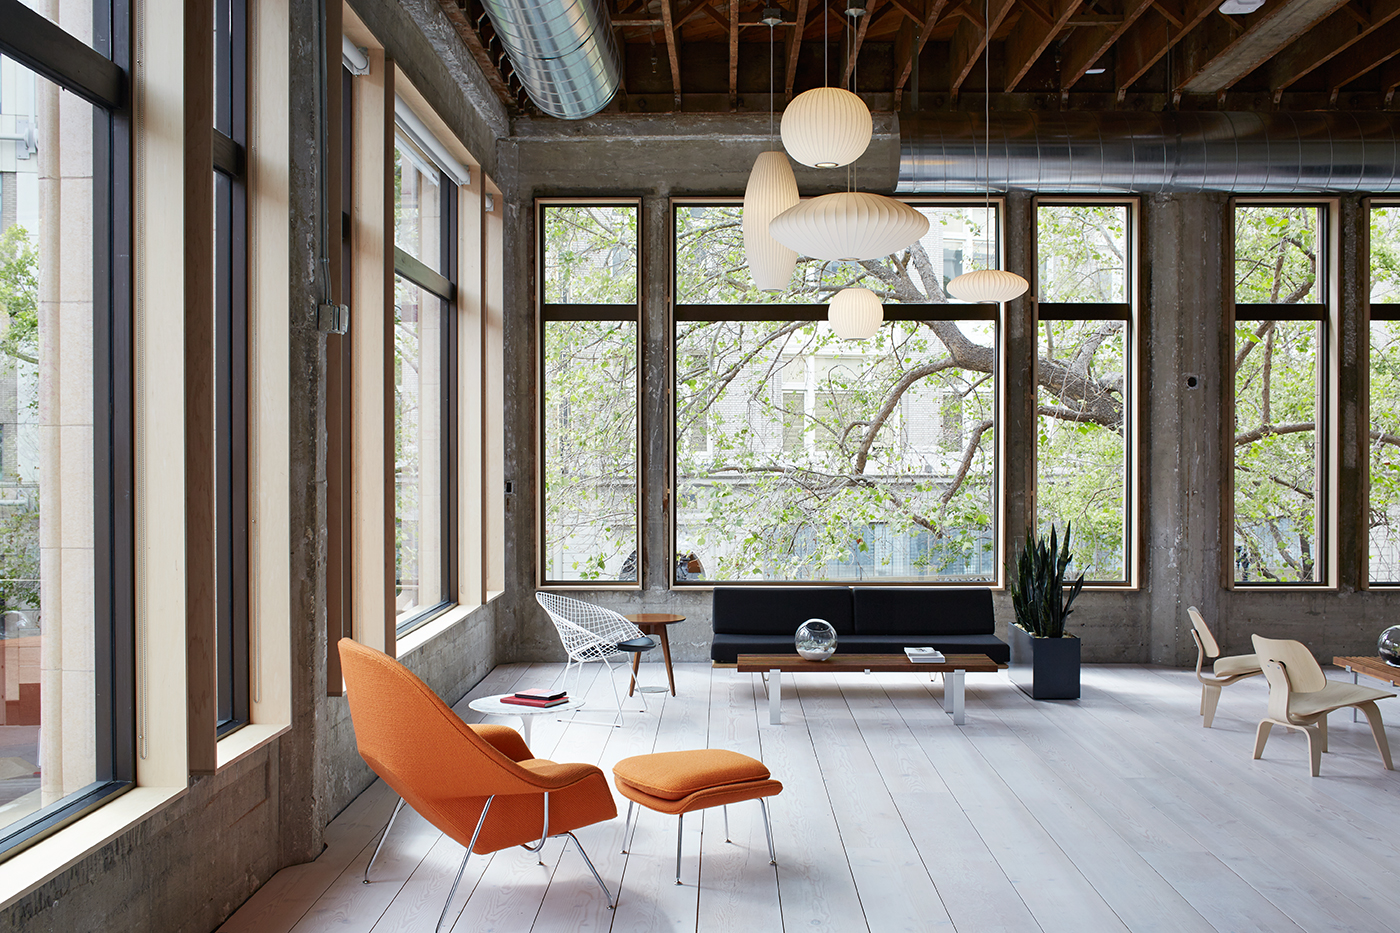 VSCO OFFICES - OAKLAND, CA